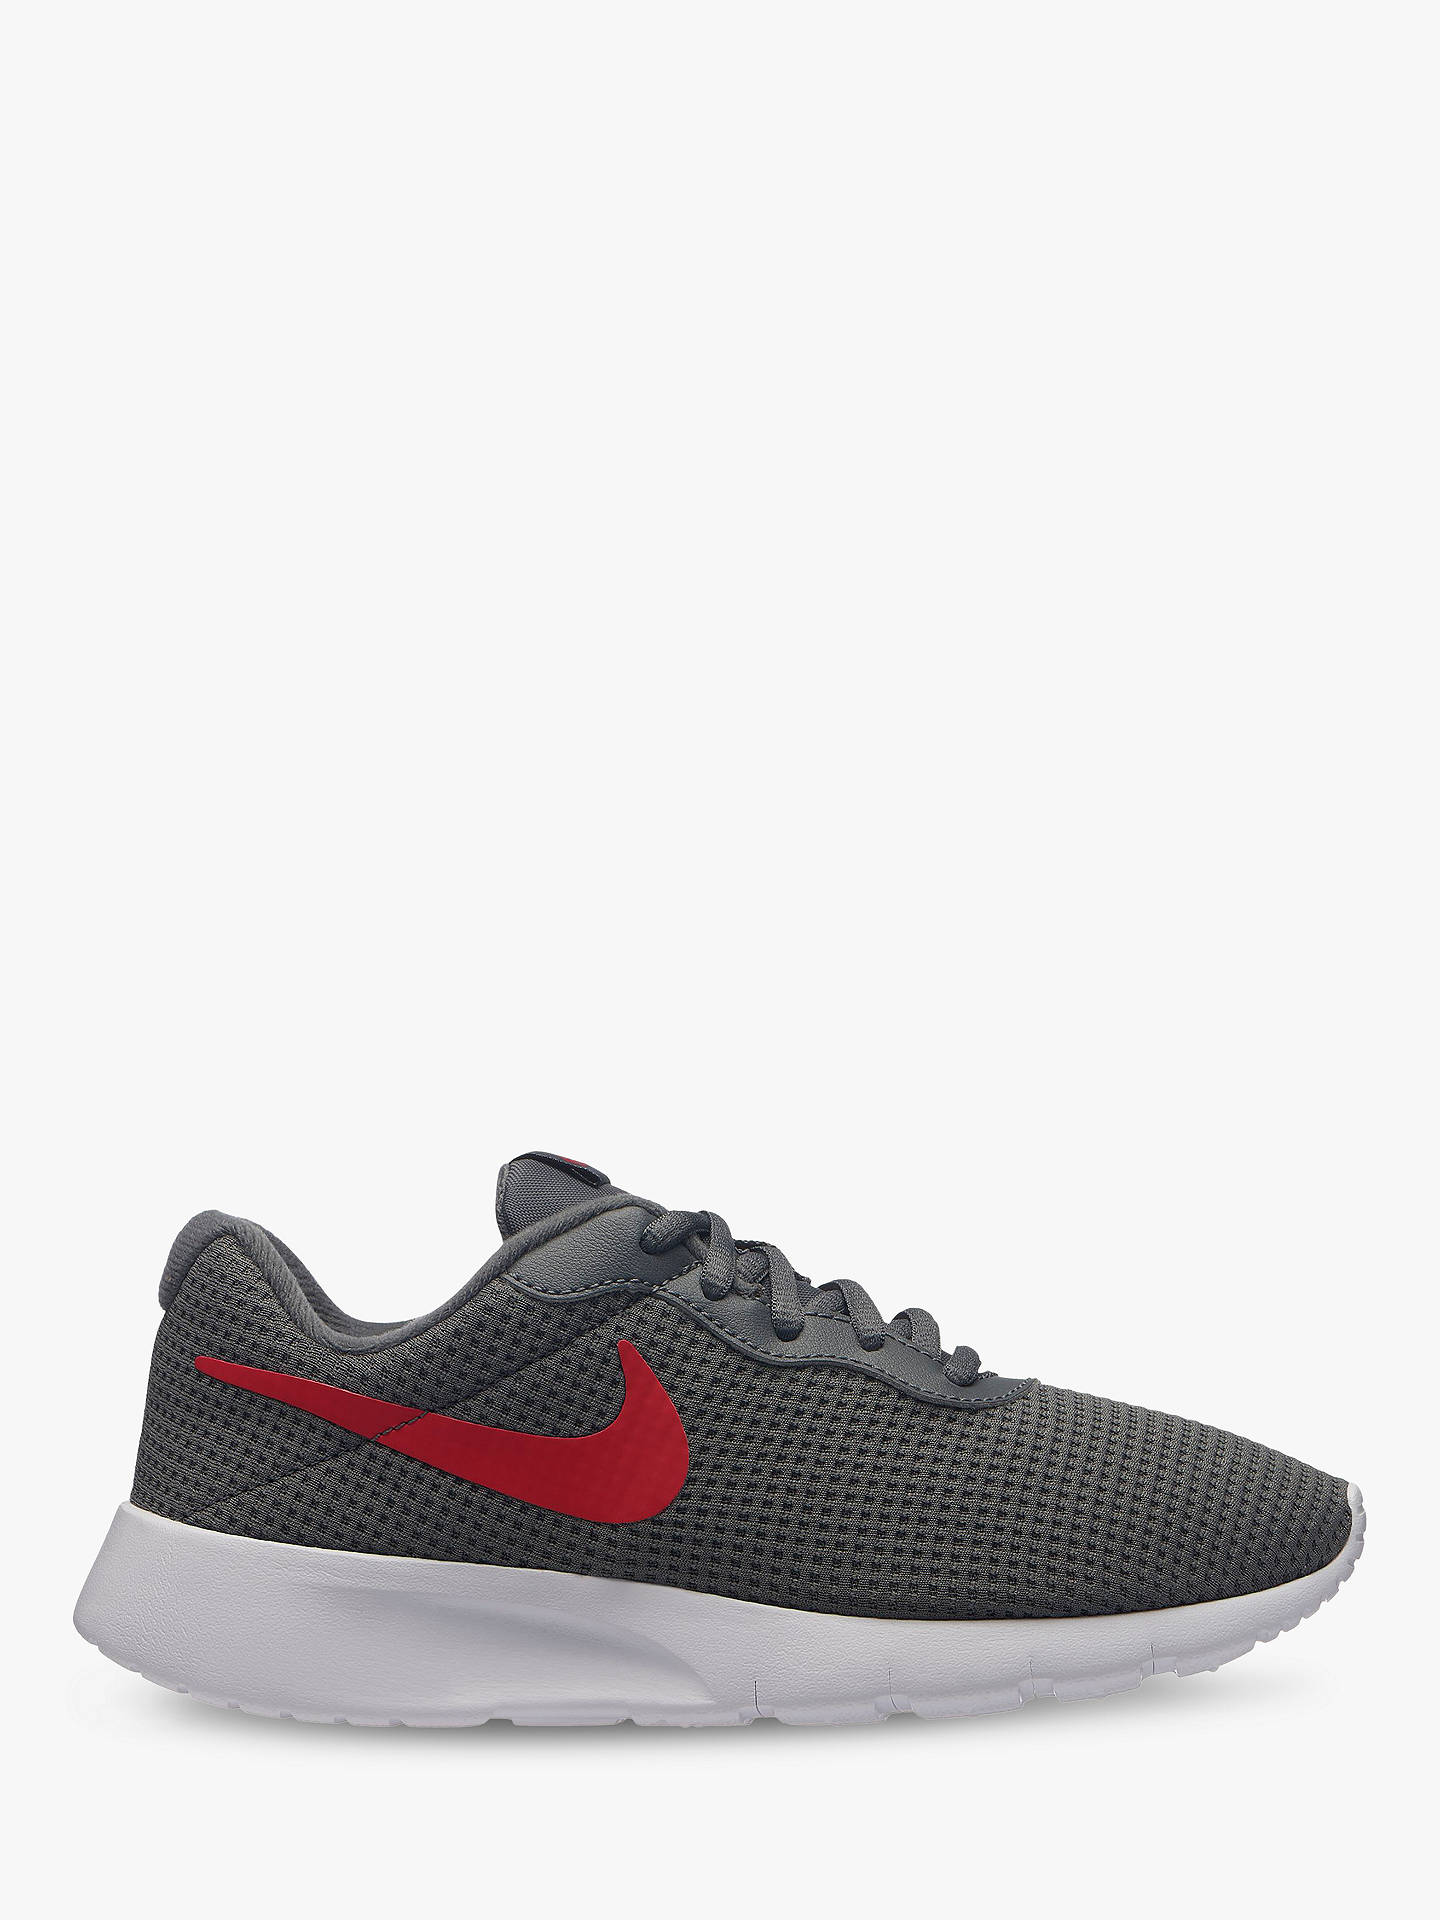 innovative design special for shoe coupon code Nike Children's Tanjun PS Trainers, Dark Grey/Red at John ...